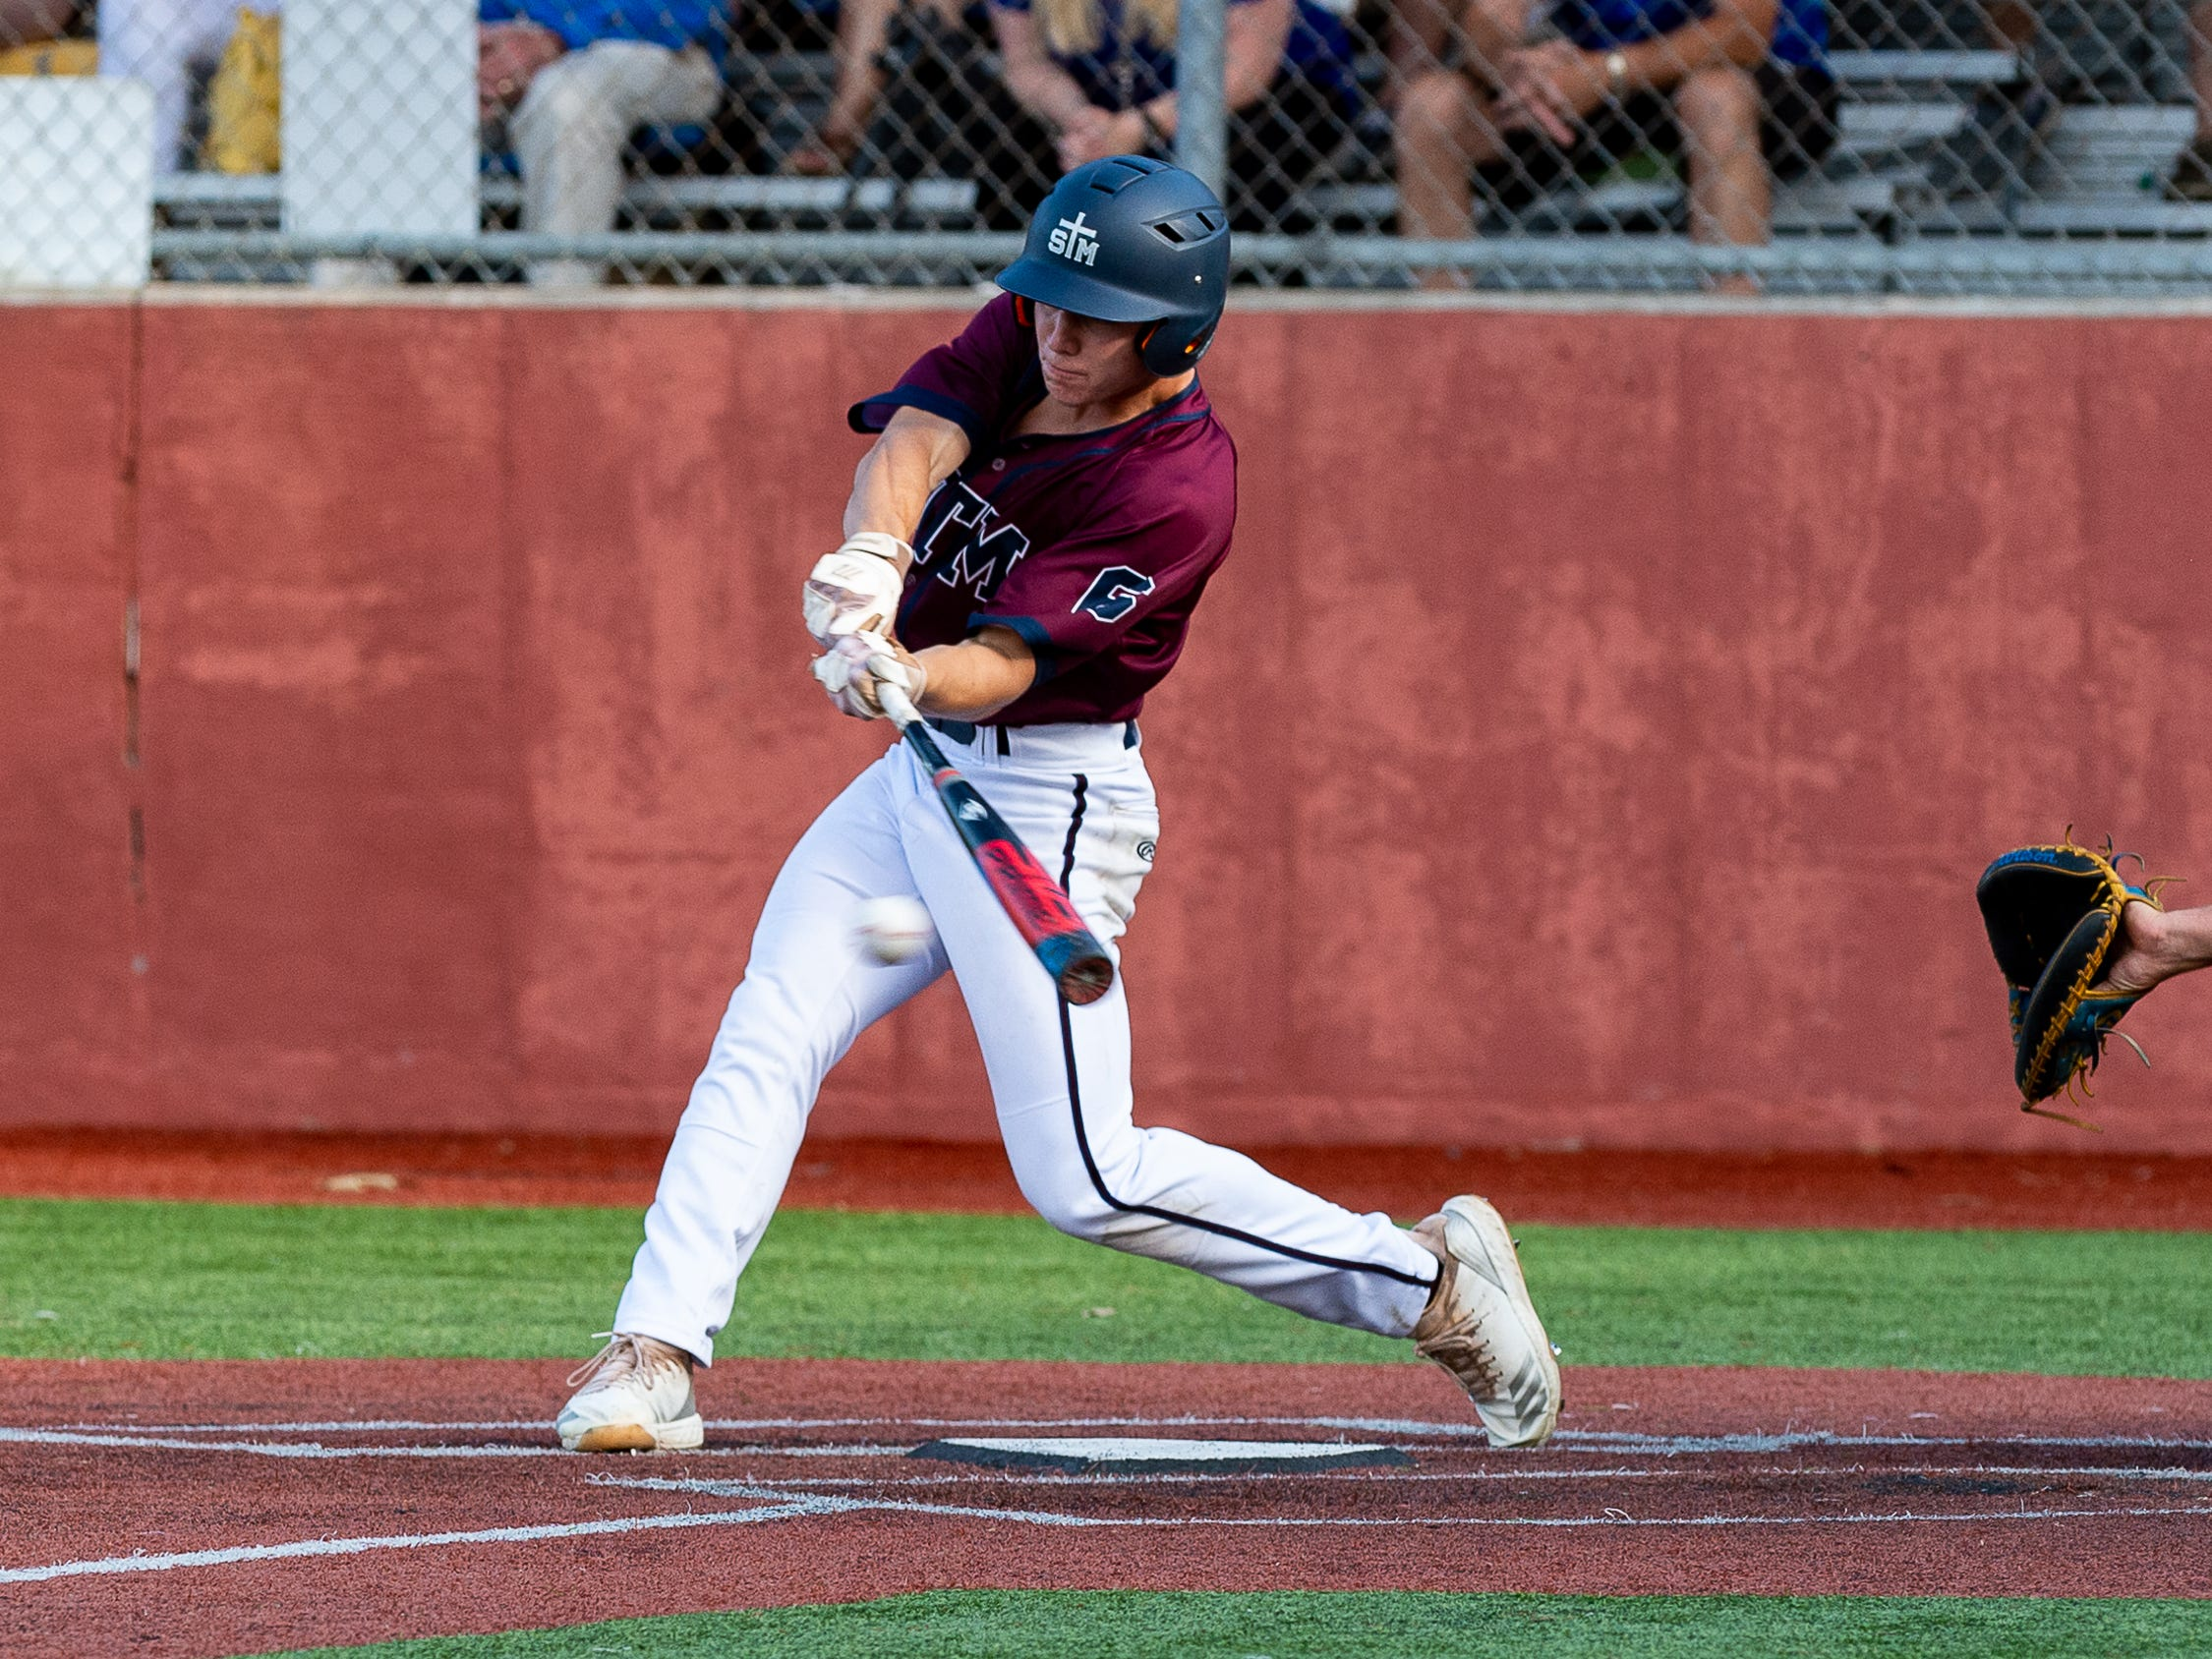 Will Cryer at the plate as St Thomas More takes on St Charles  in the Div II semi final round at the LHSAA State Championship. . Sunday, May 12, 2019.